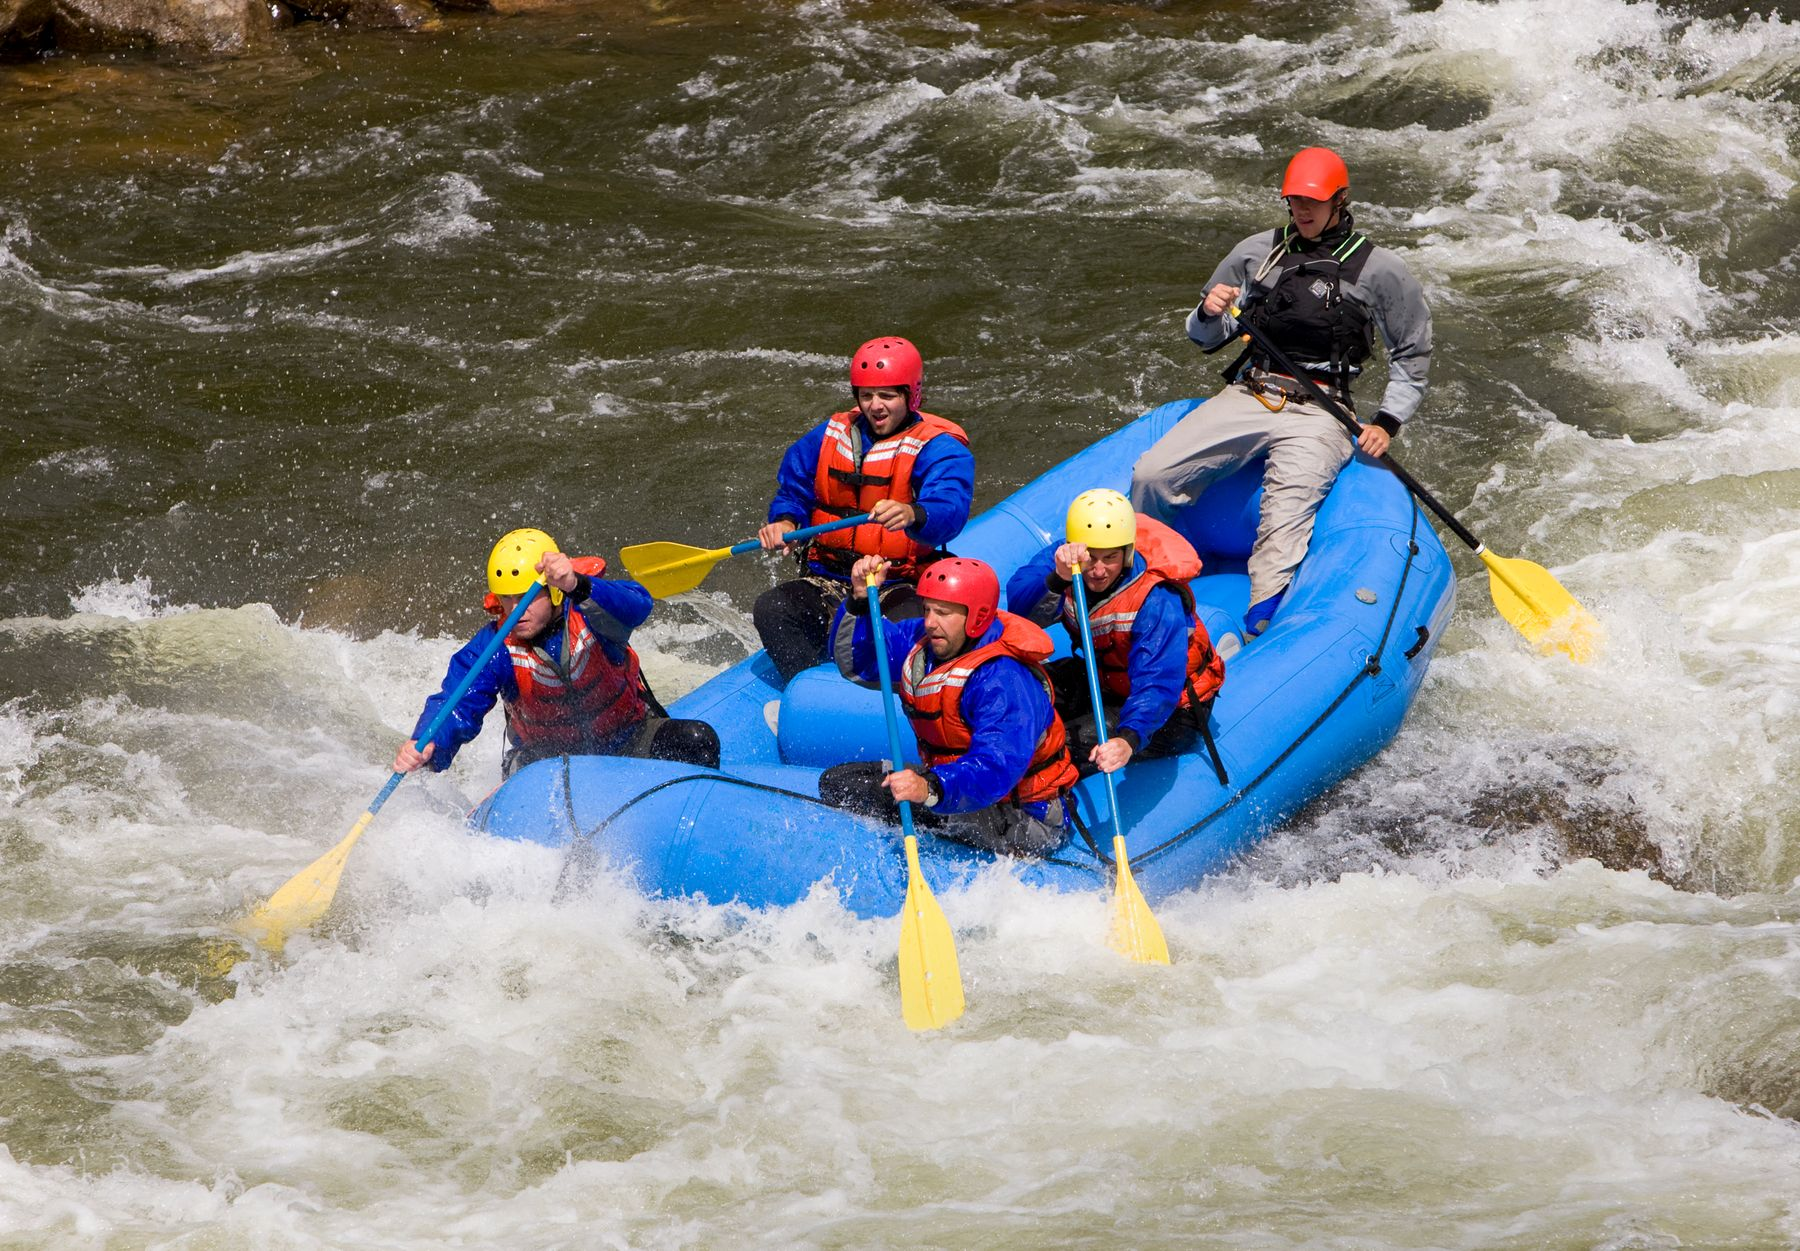 People whitewater rafting along the river.